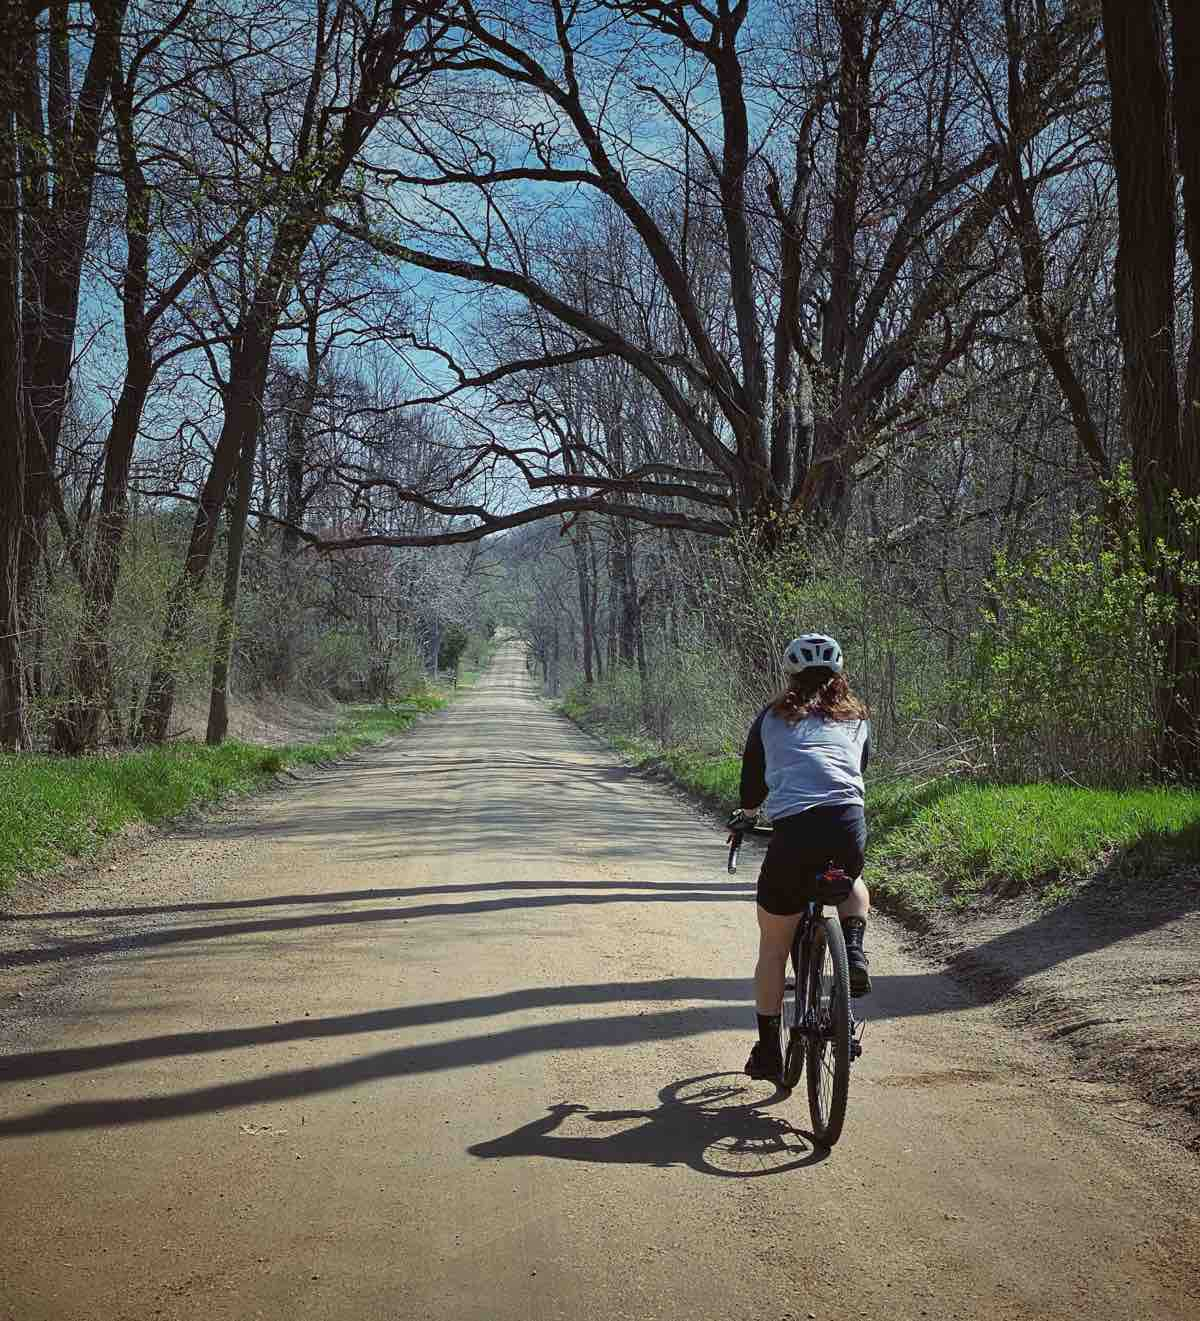 a bicyclist rides on a packed dirt road facing away from the camera. There are trees on either side of the road that are just beginning to leaf out and grass is very green on the edges.